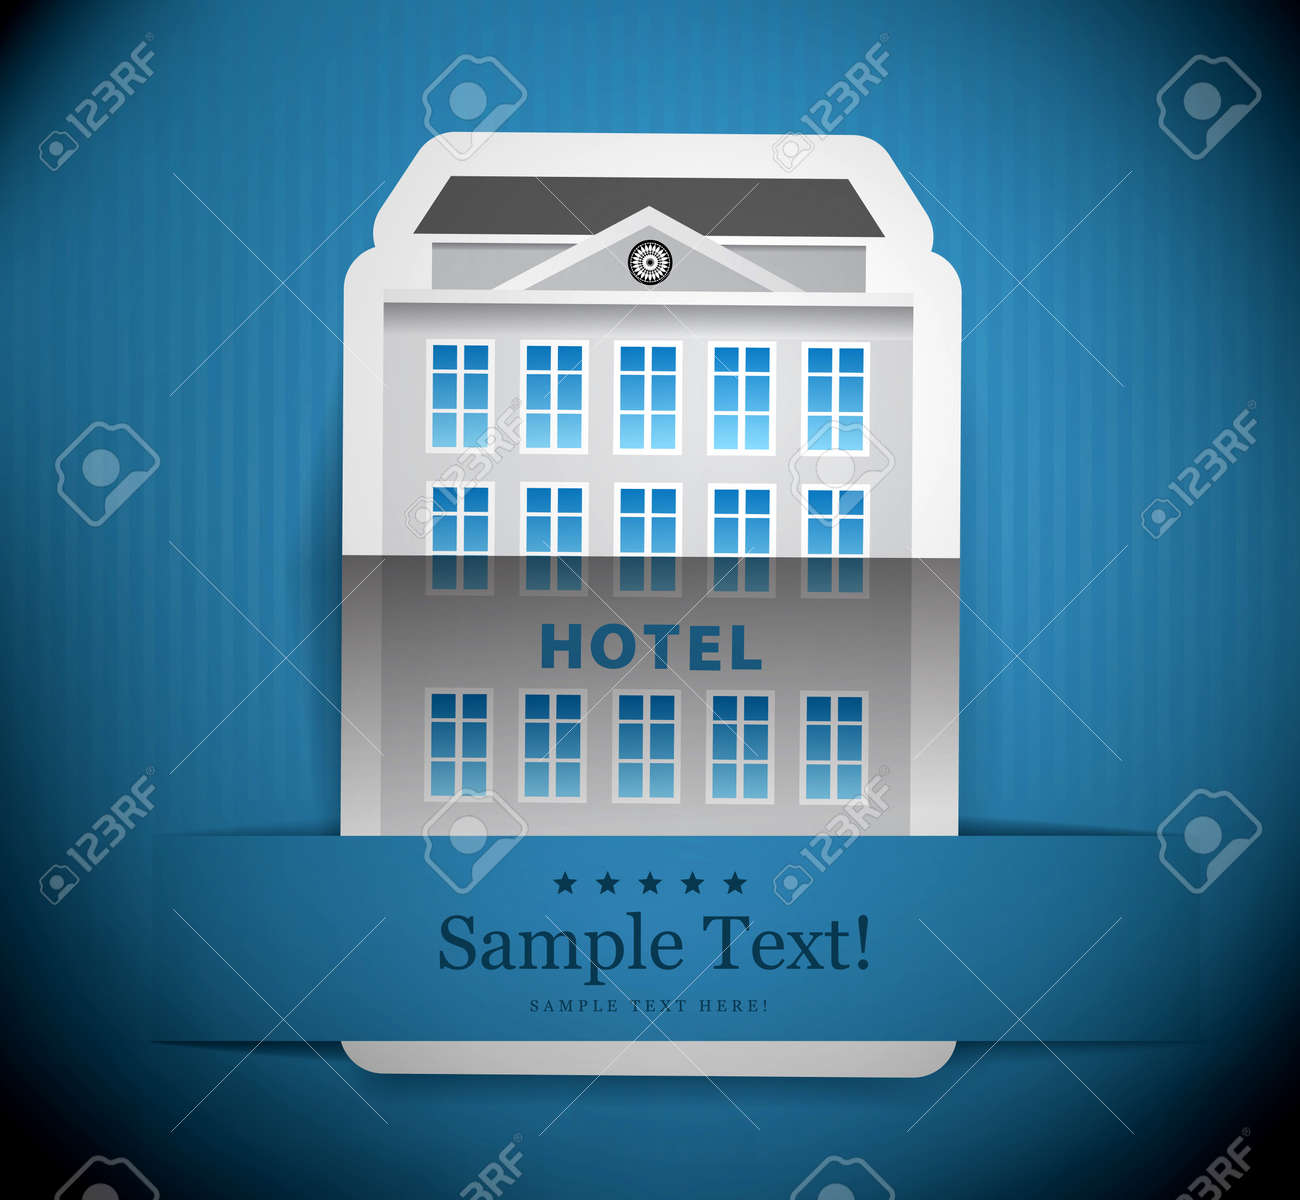 The building of hotel Stock Photo - 20882915